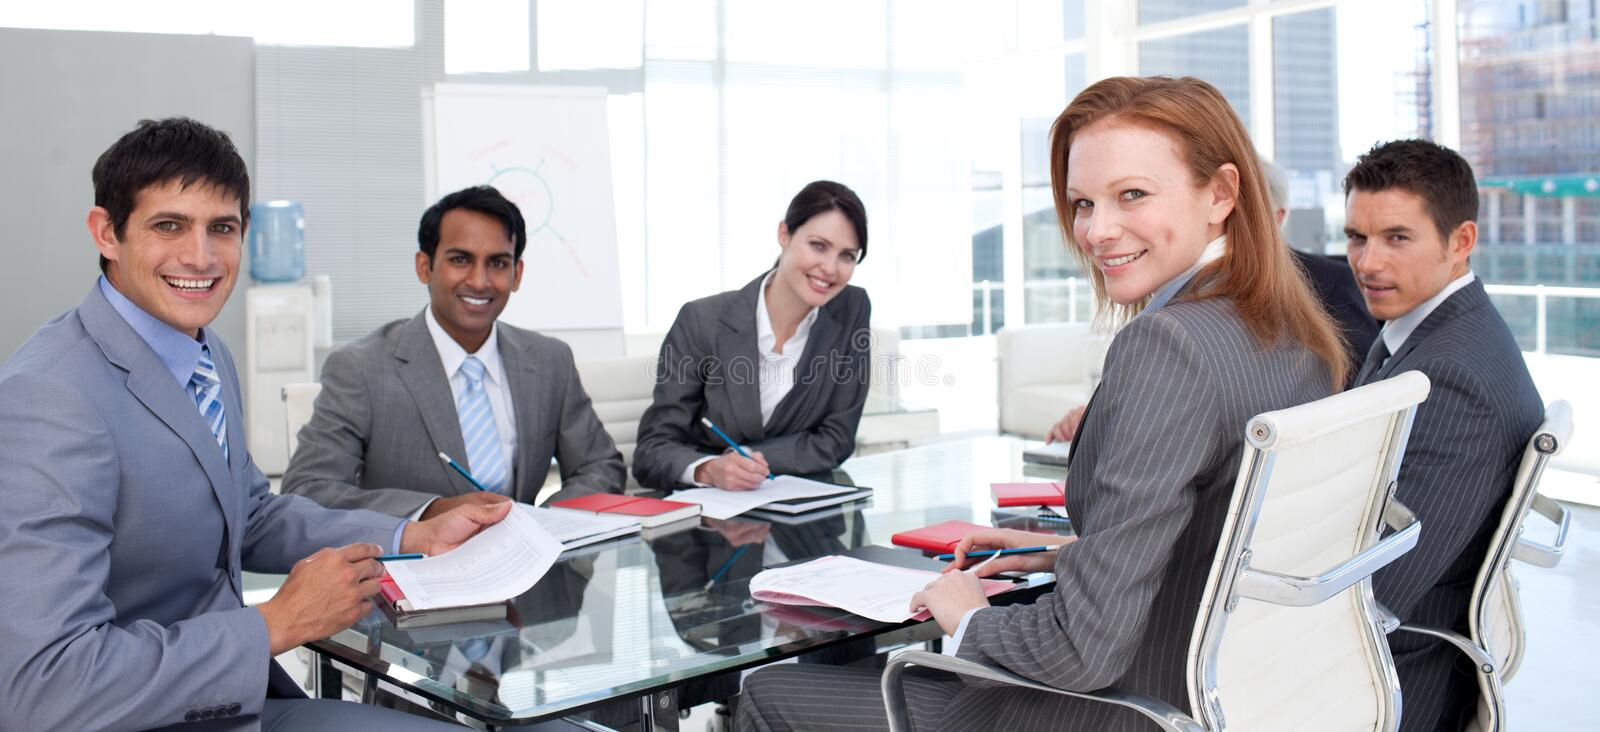 Download Business Group Showing Ethnic Diversity Smiling Stock Photo - Image: 12054260